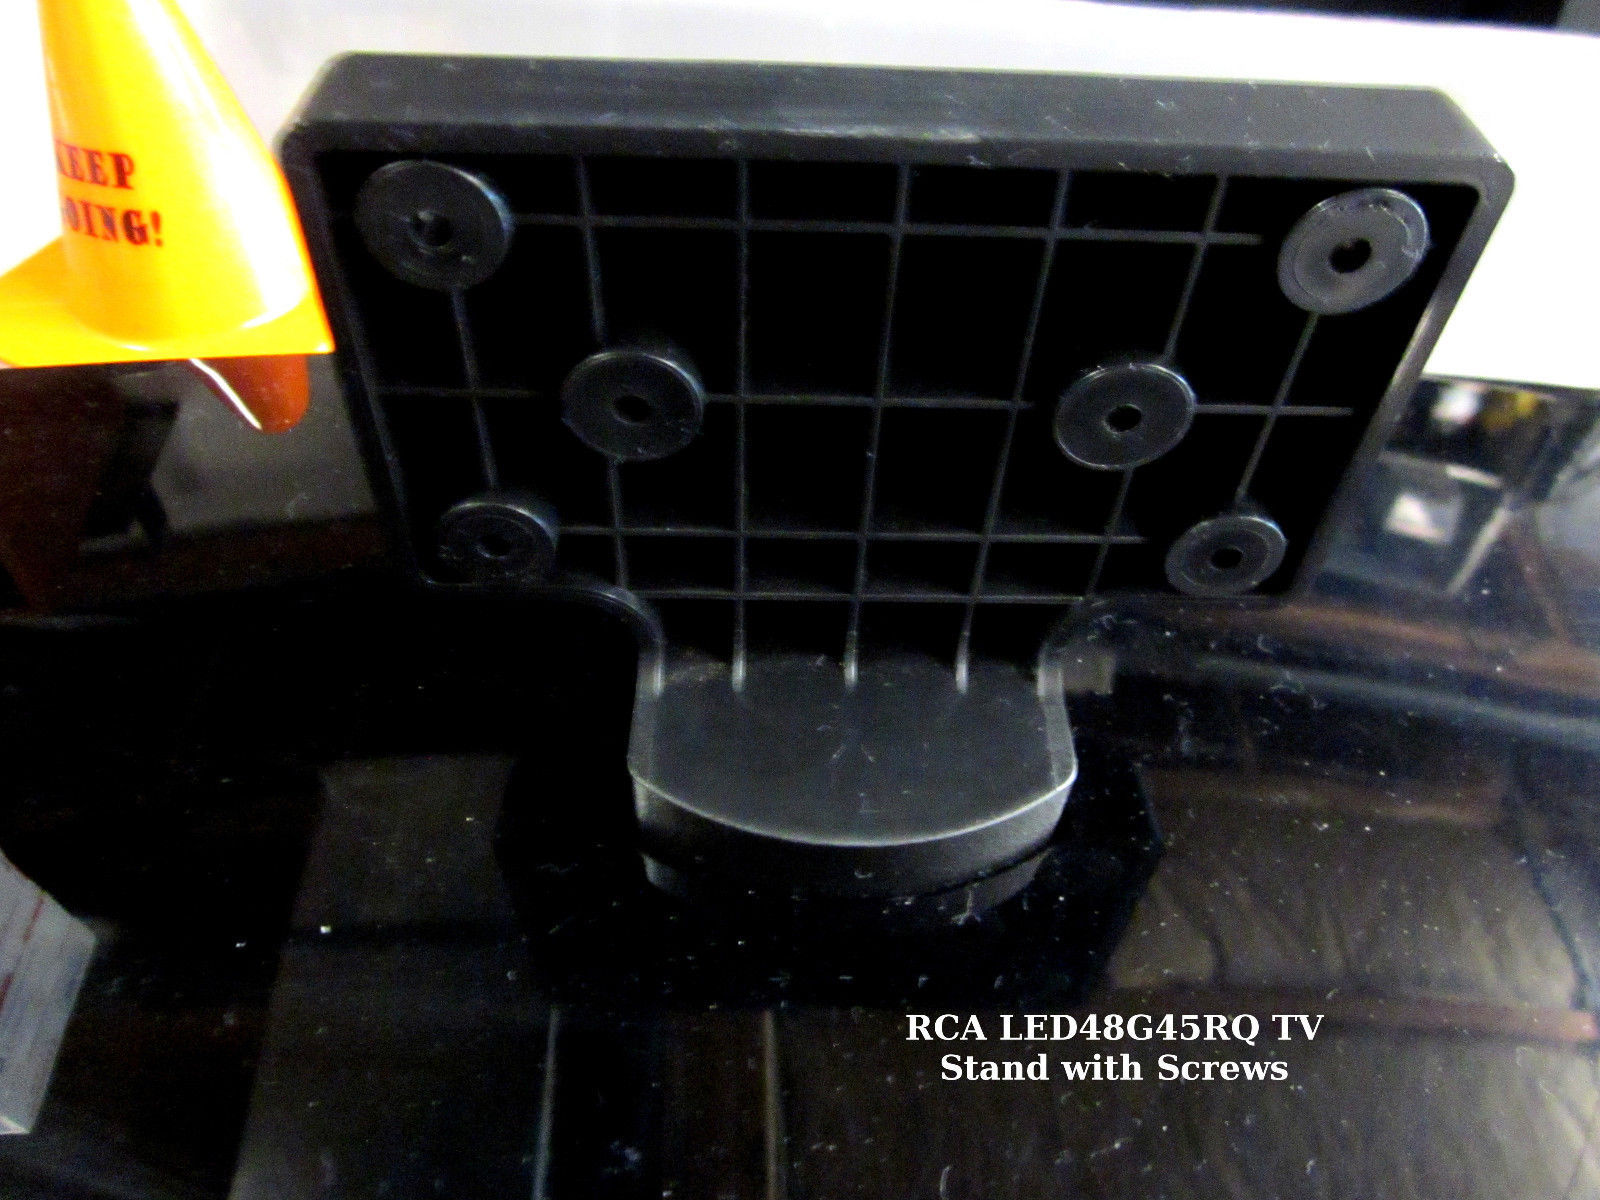 RCA LED48G45RQ TV Stand with Screws